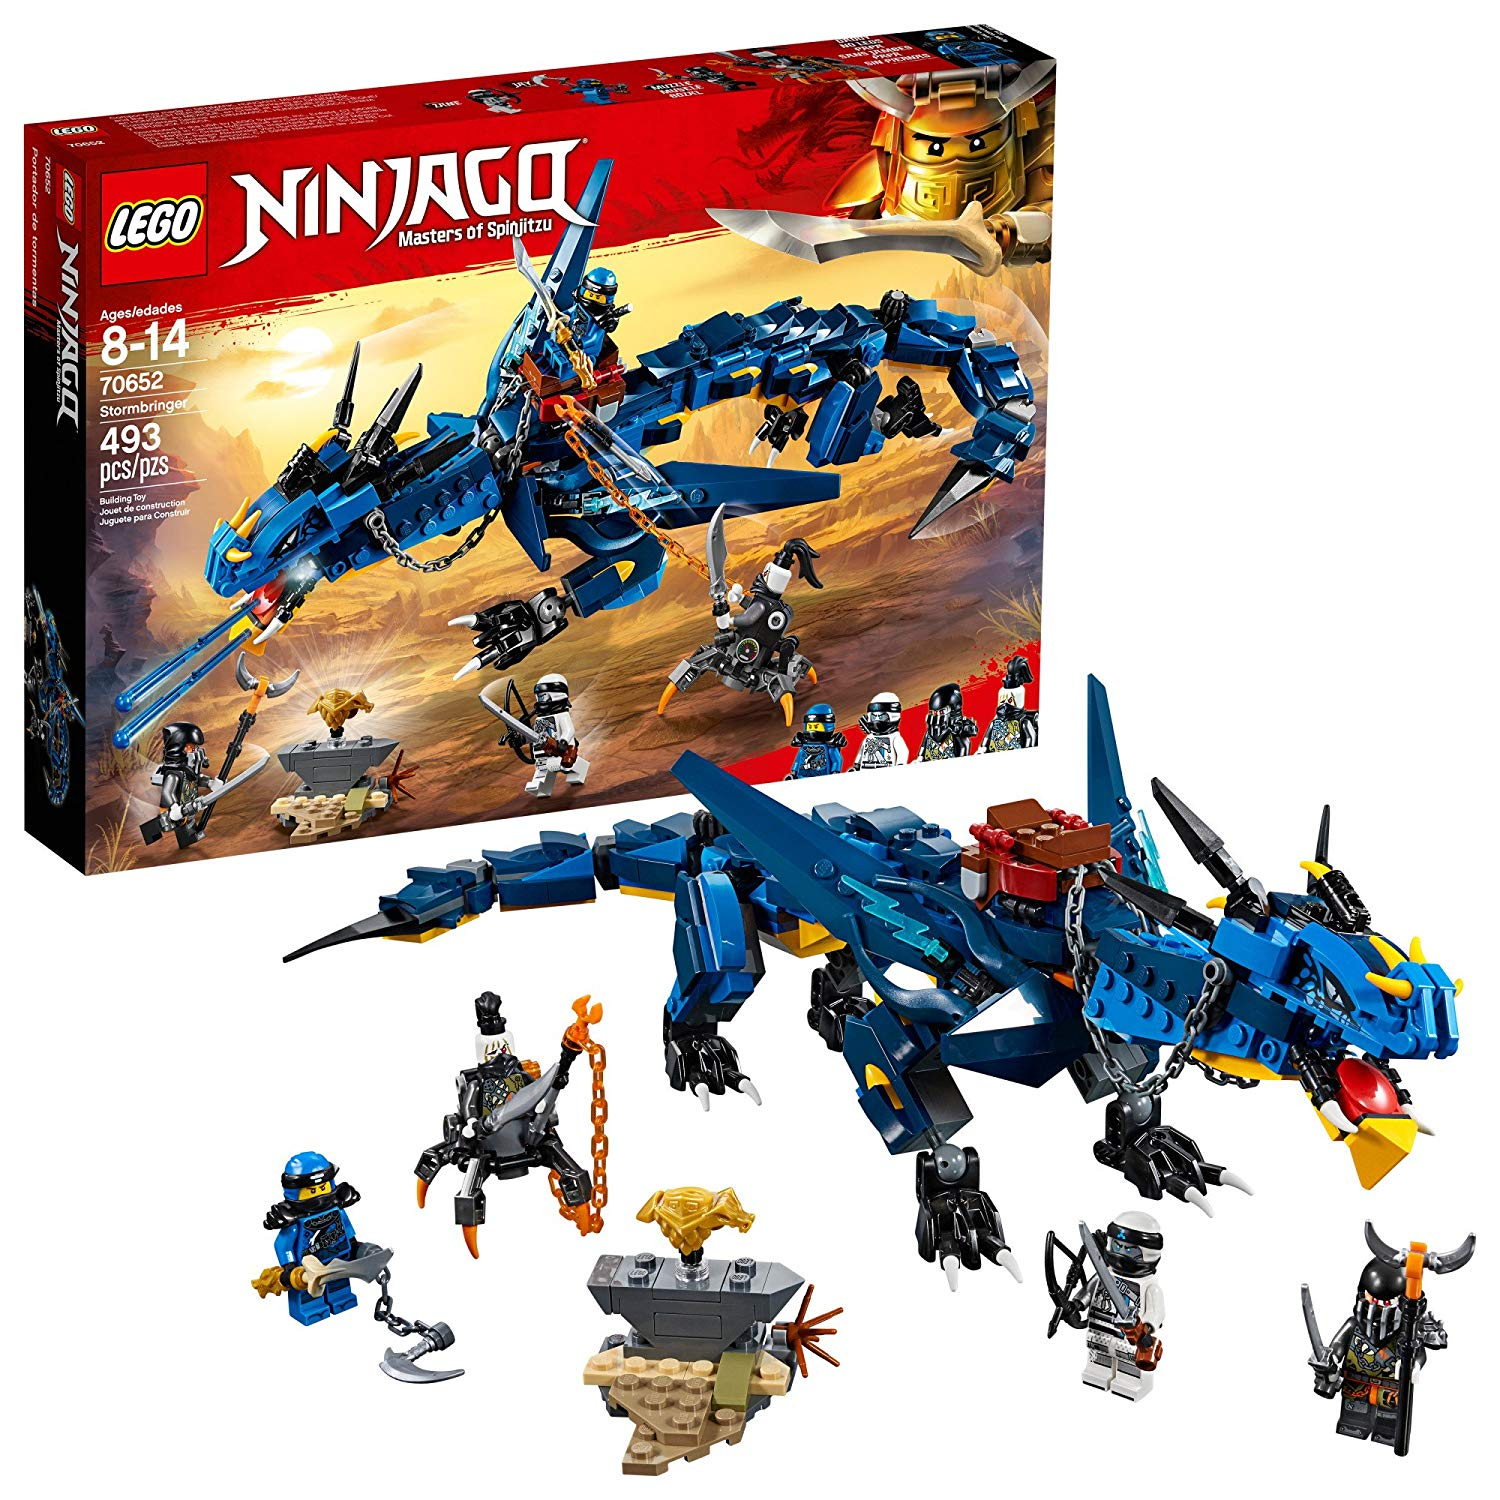 10 Of The Best Dragon Toys For Kids Reviews In 2021 15